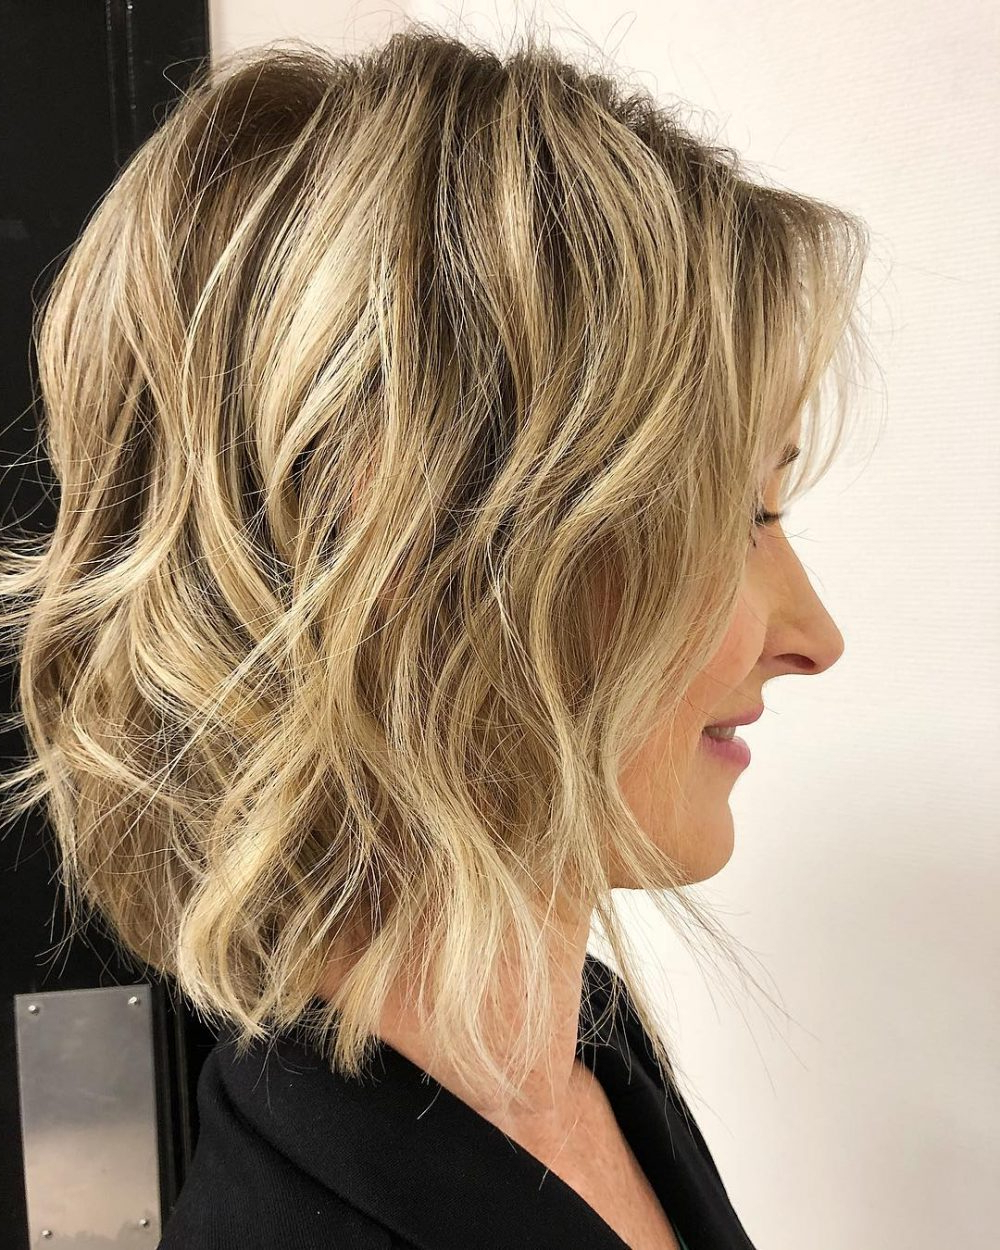 43 Perfect Short Hairstyles For Fine Hair In 2018 In Short Curly Hairstyles For Fine Hair (View 6 of 25)